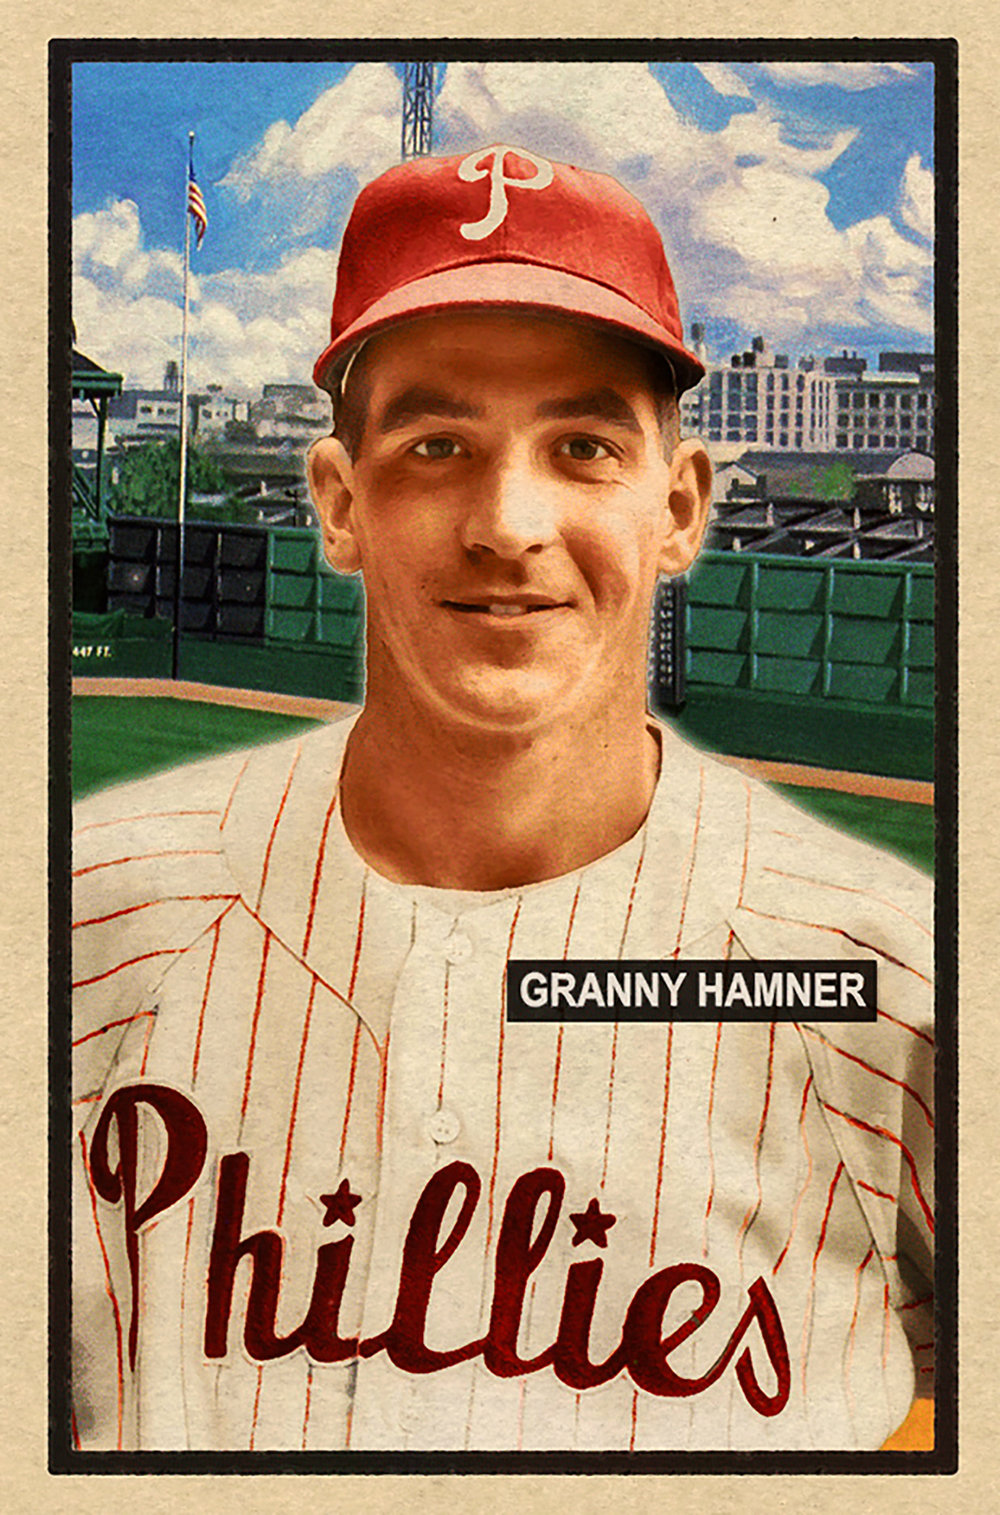 1951 Series #86GRANNY HAMNER - Popular Phils infielder and '51 Series low population with beautiful Shibe Park backdrop. One of 2017's prettiest cards.SOLD FOR 125.35 USD, December 2017